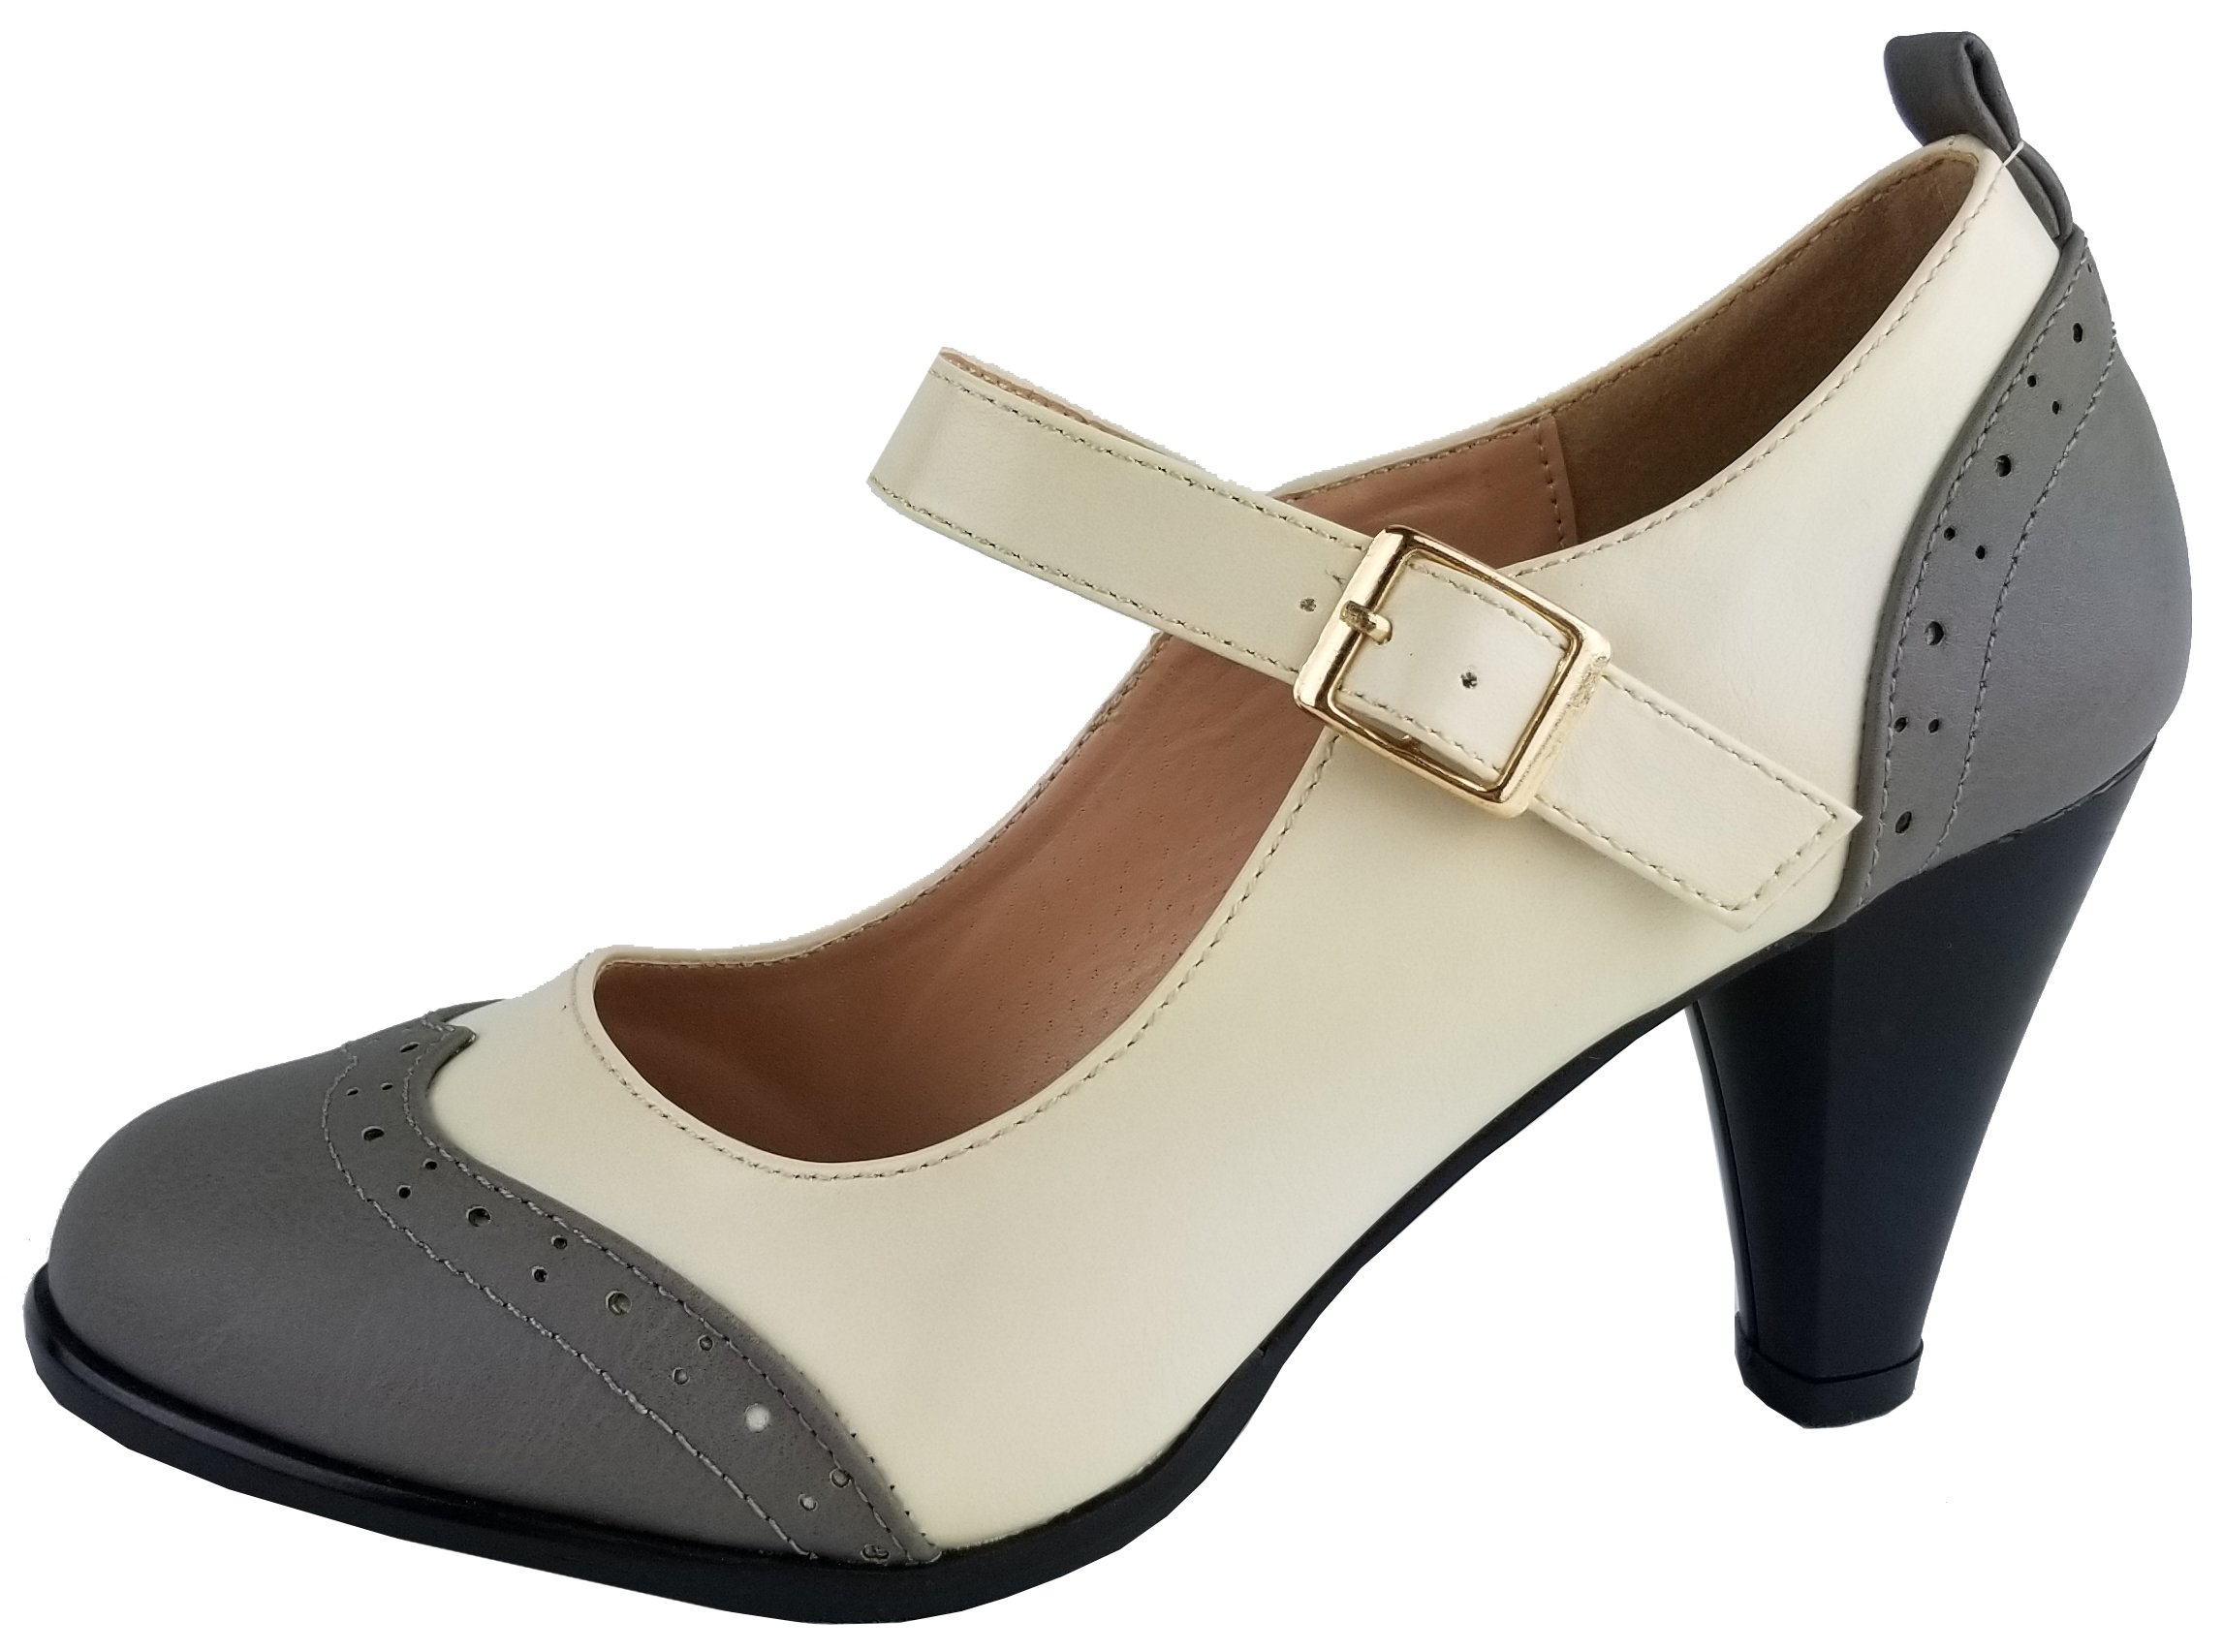 5898aac5f81 Get Quotations · Chase   Chloe Dora-2 Women s Round Toe Two Tone Mary Jane  Pumps